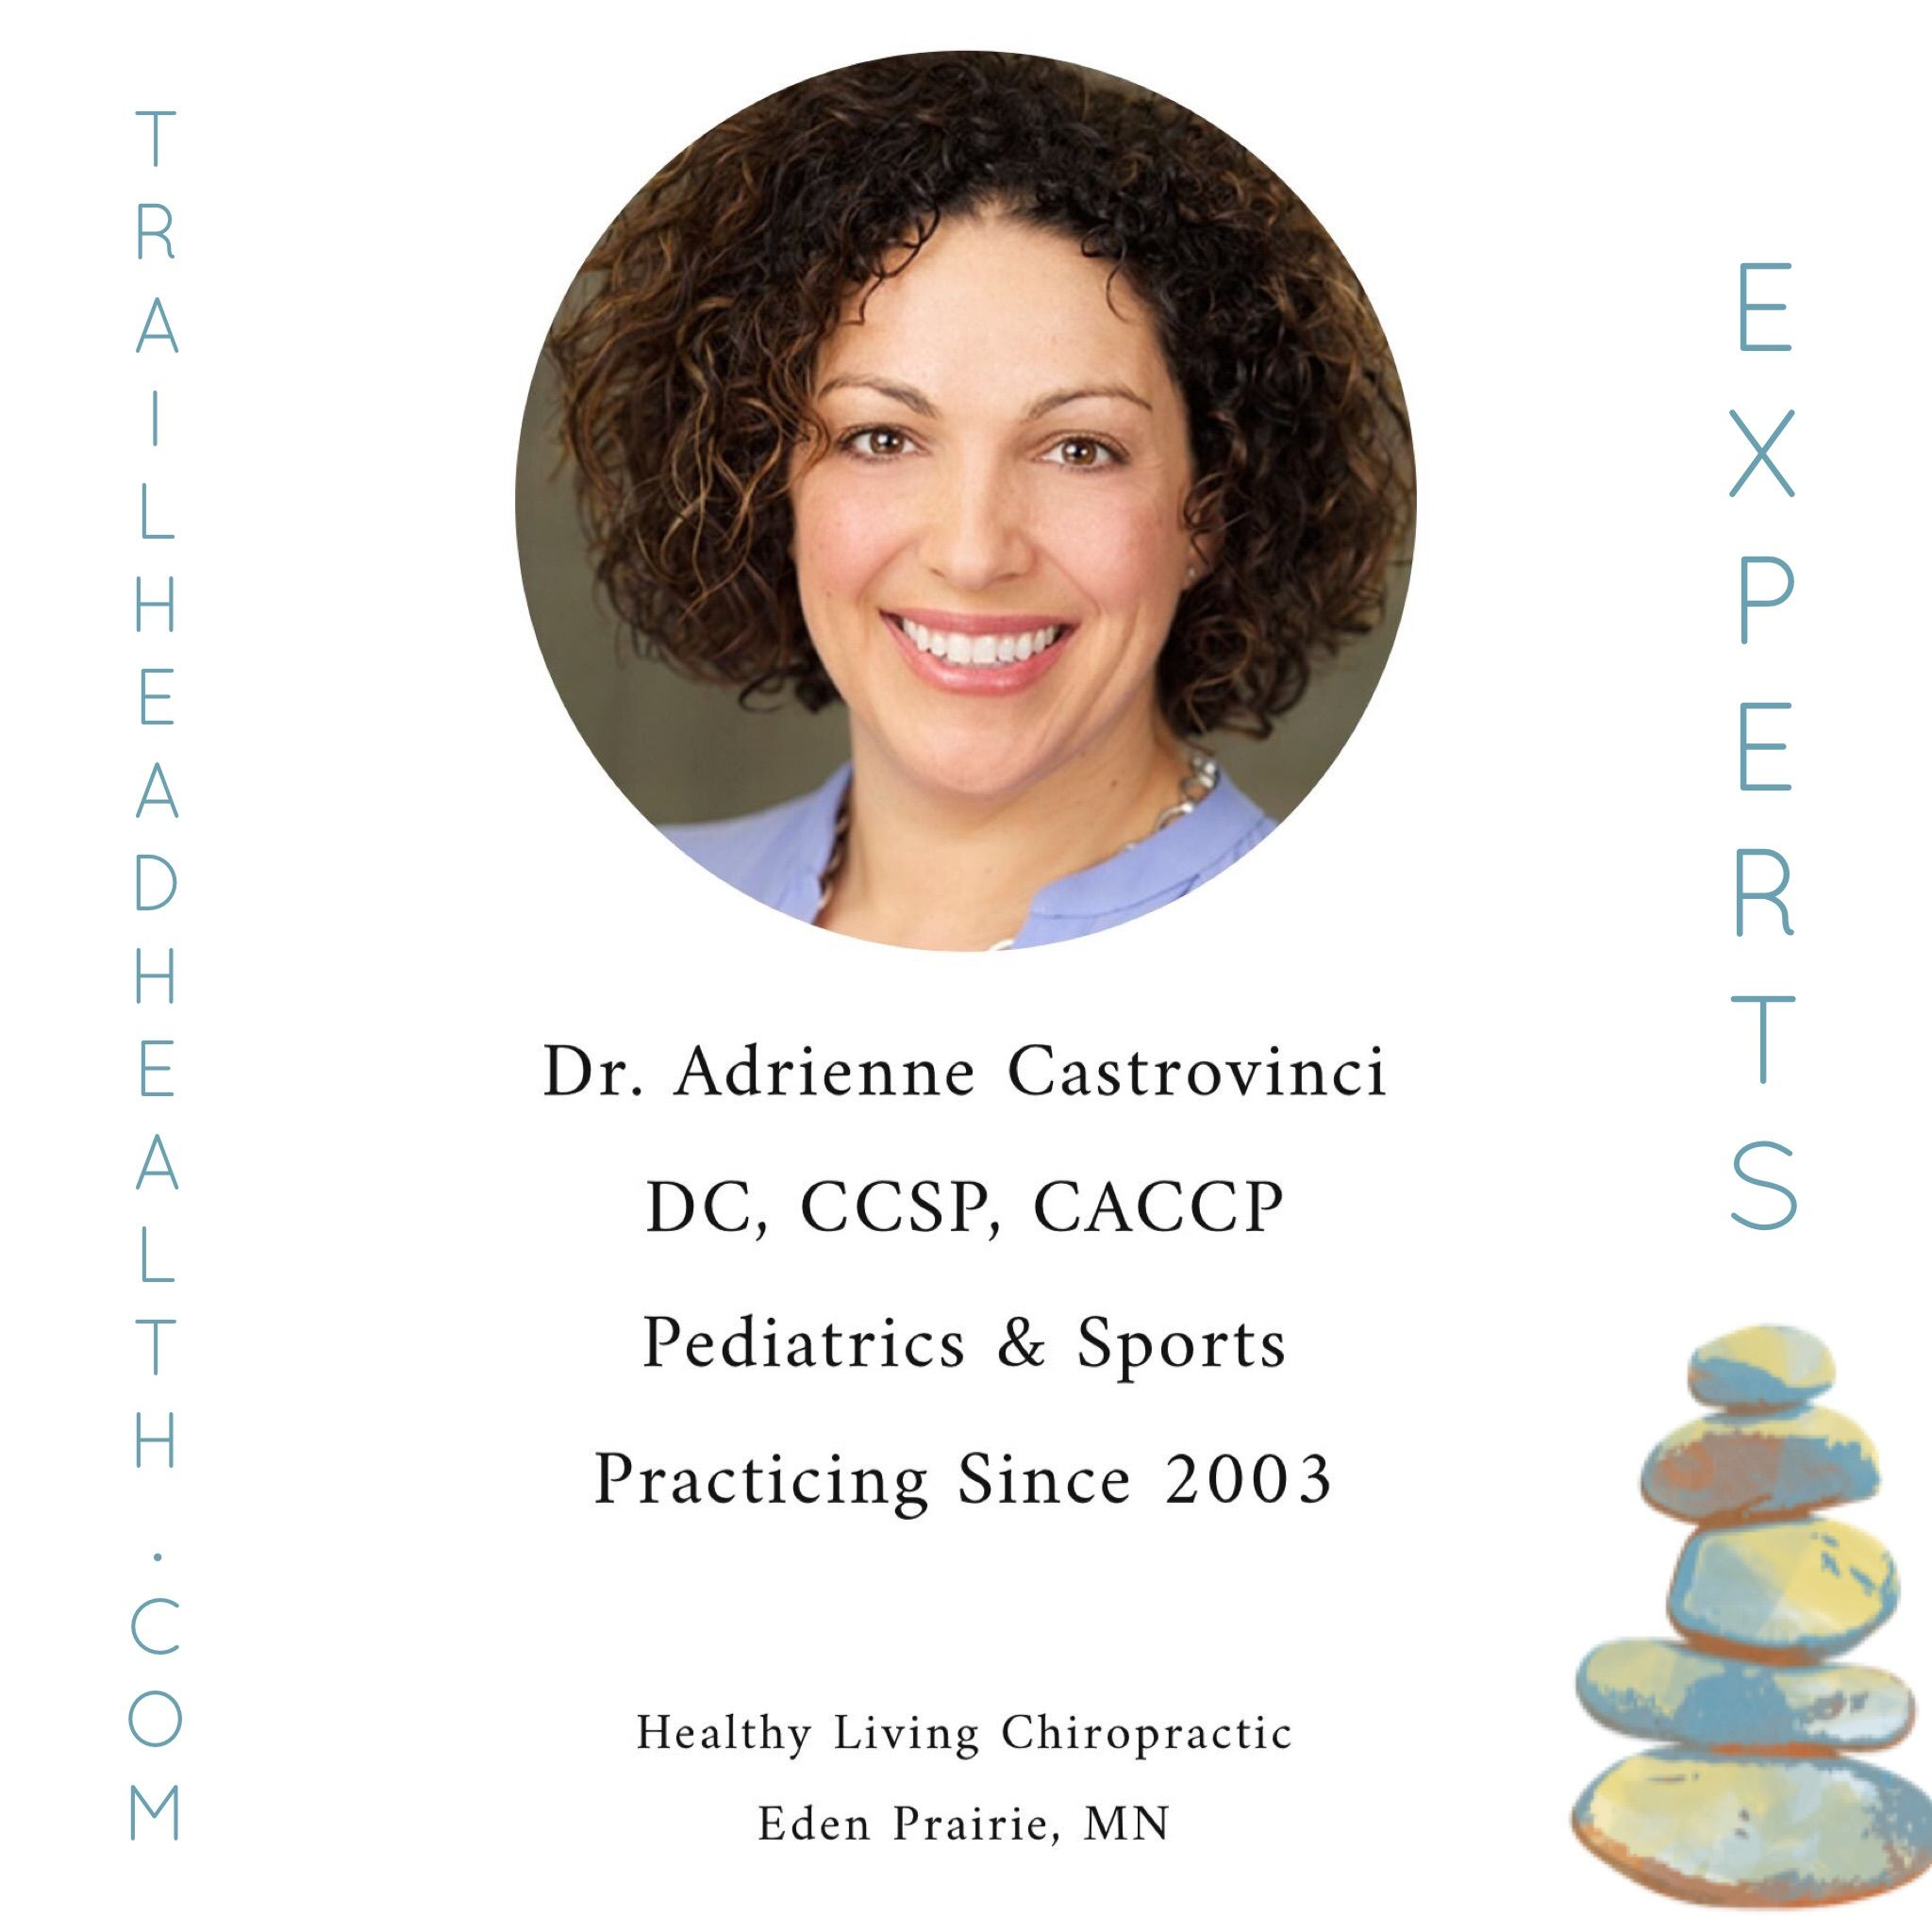 At healthy living chiropractic we have tried to create an